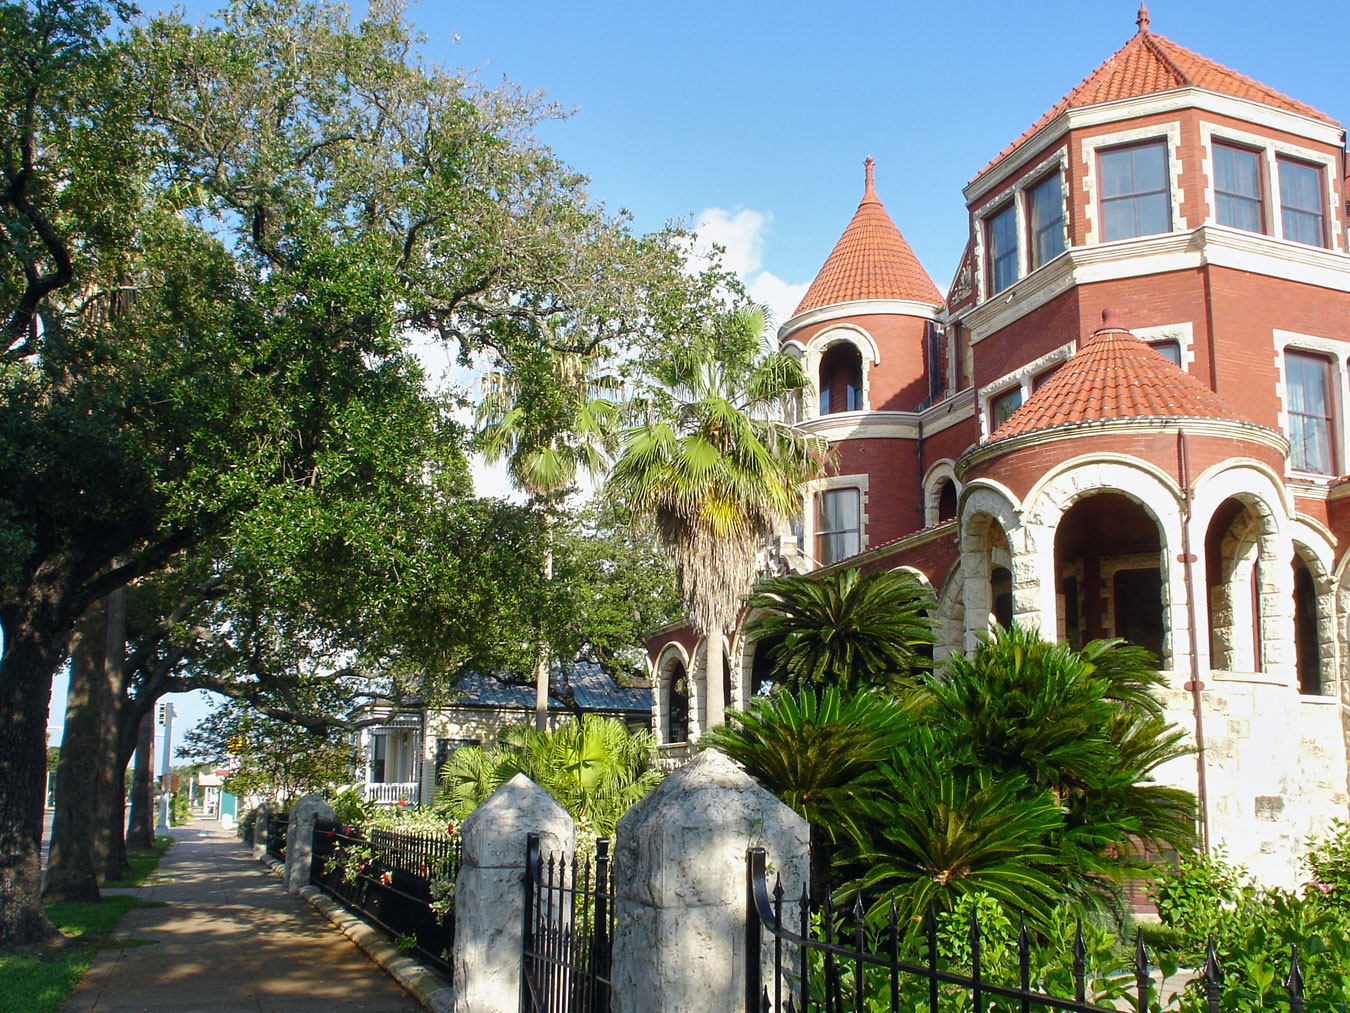 Exterior View of 1895 Moody Mansion